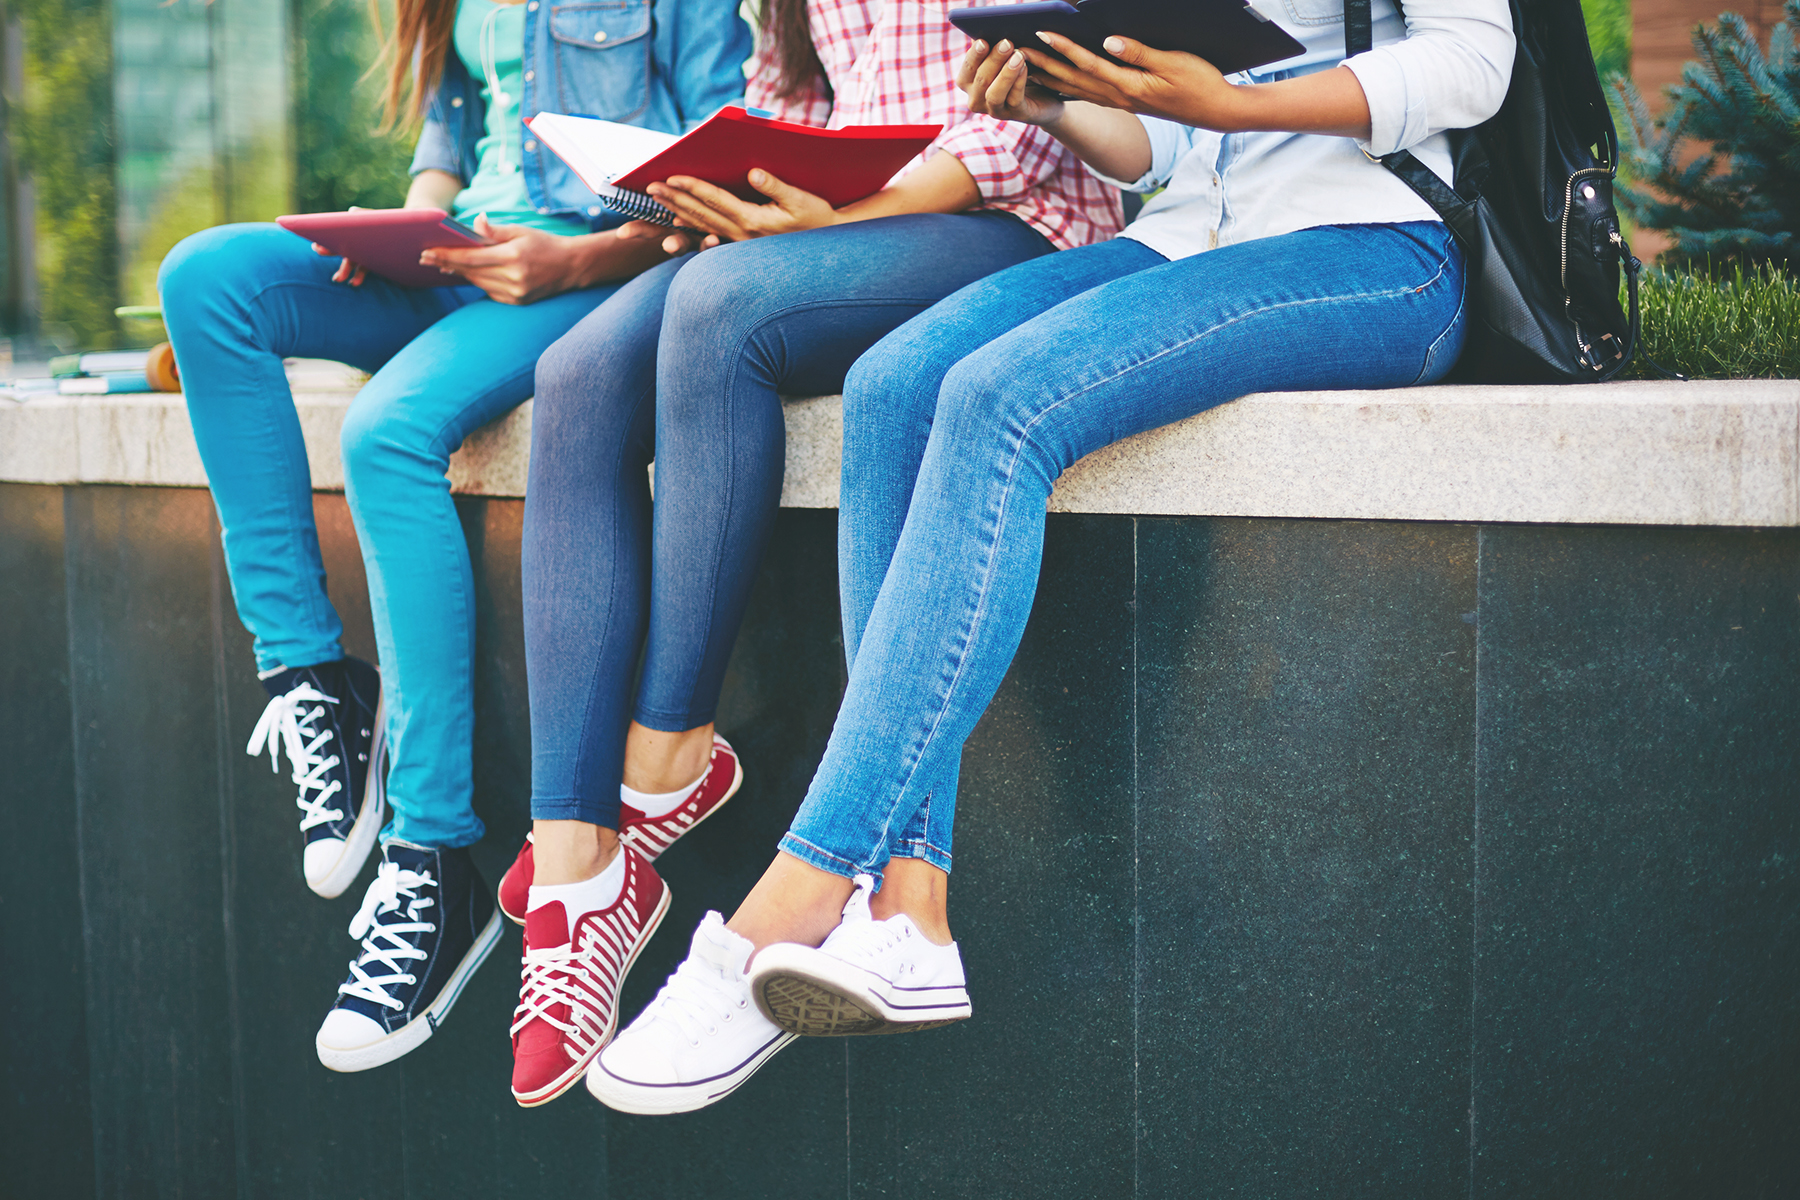 If you are in the thick of parenting teens and tweens, you might feel like you're in uncharted territory. Consider these 12 resources your guidebooks on this journey!